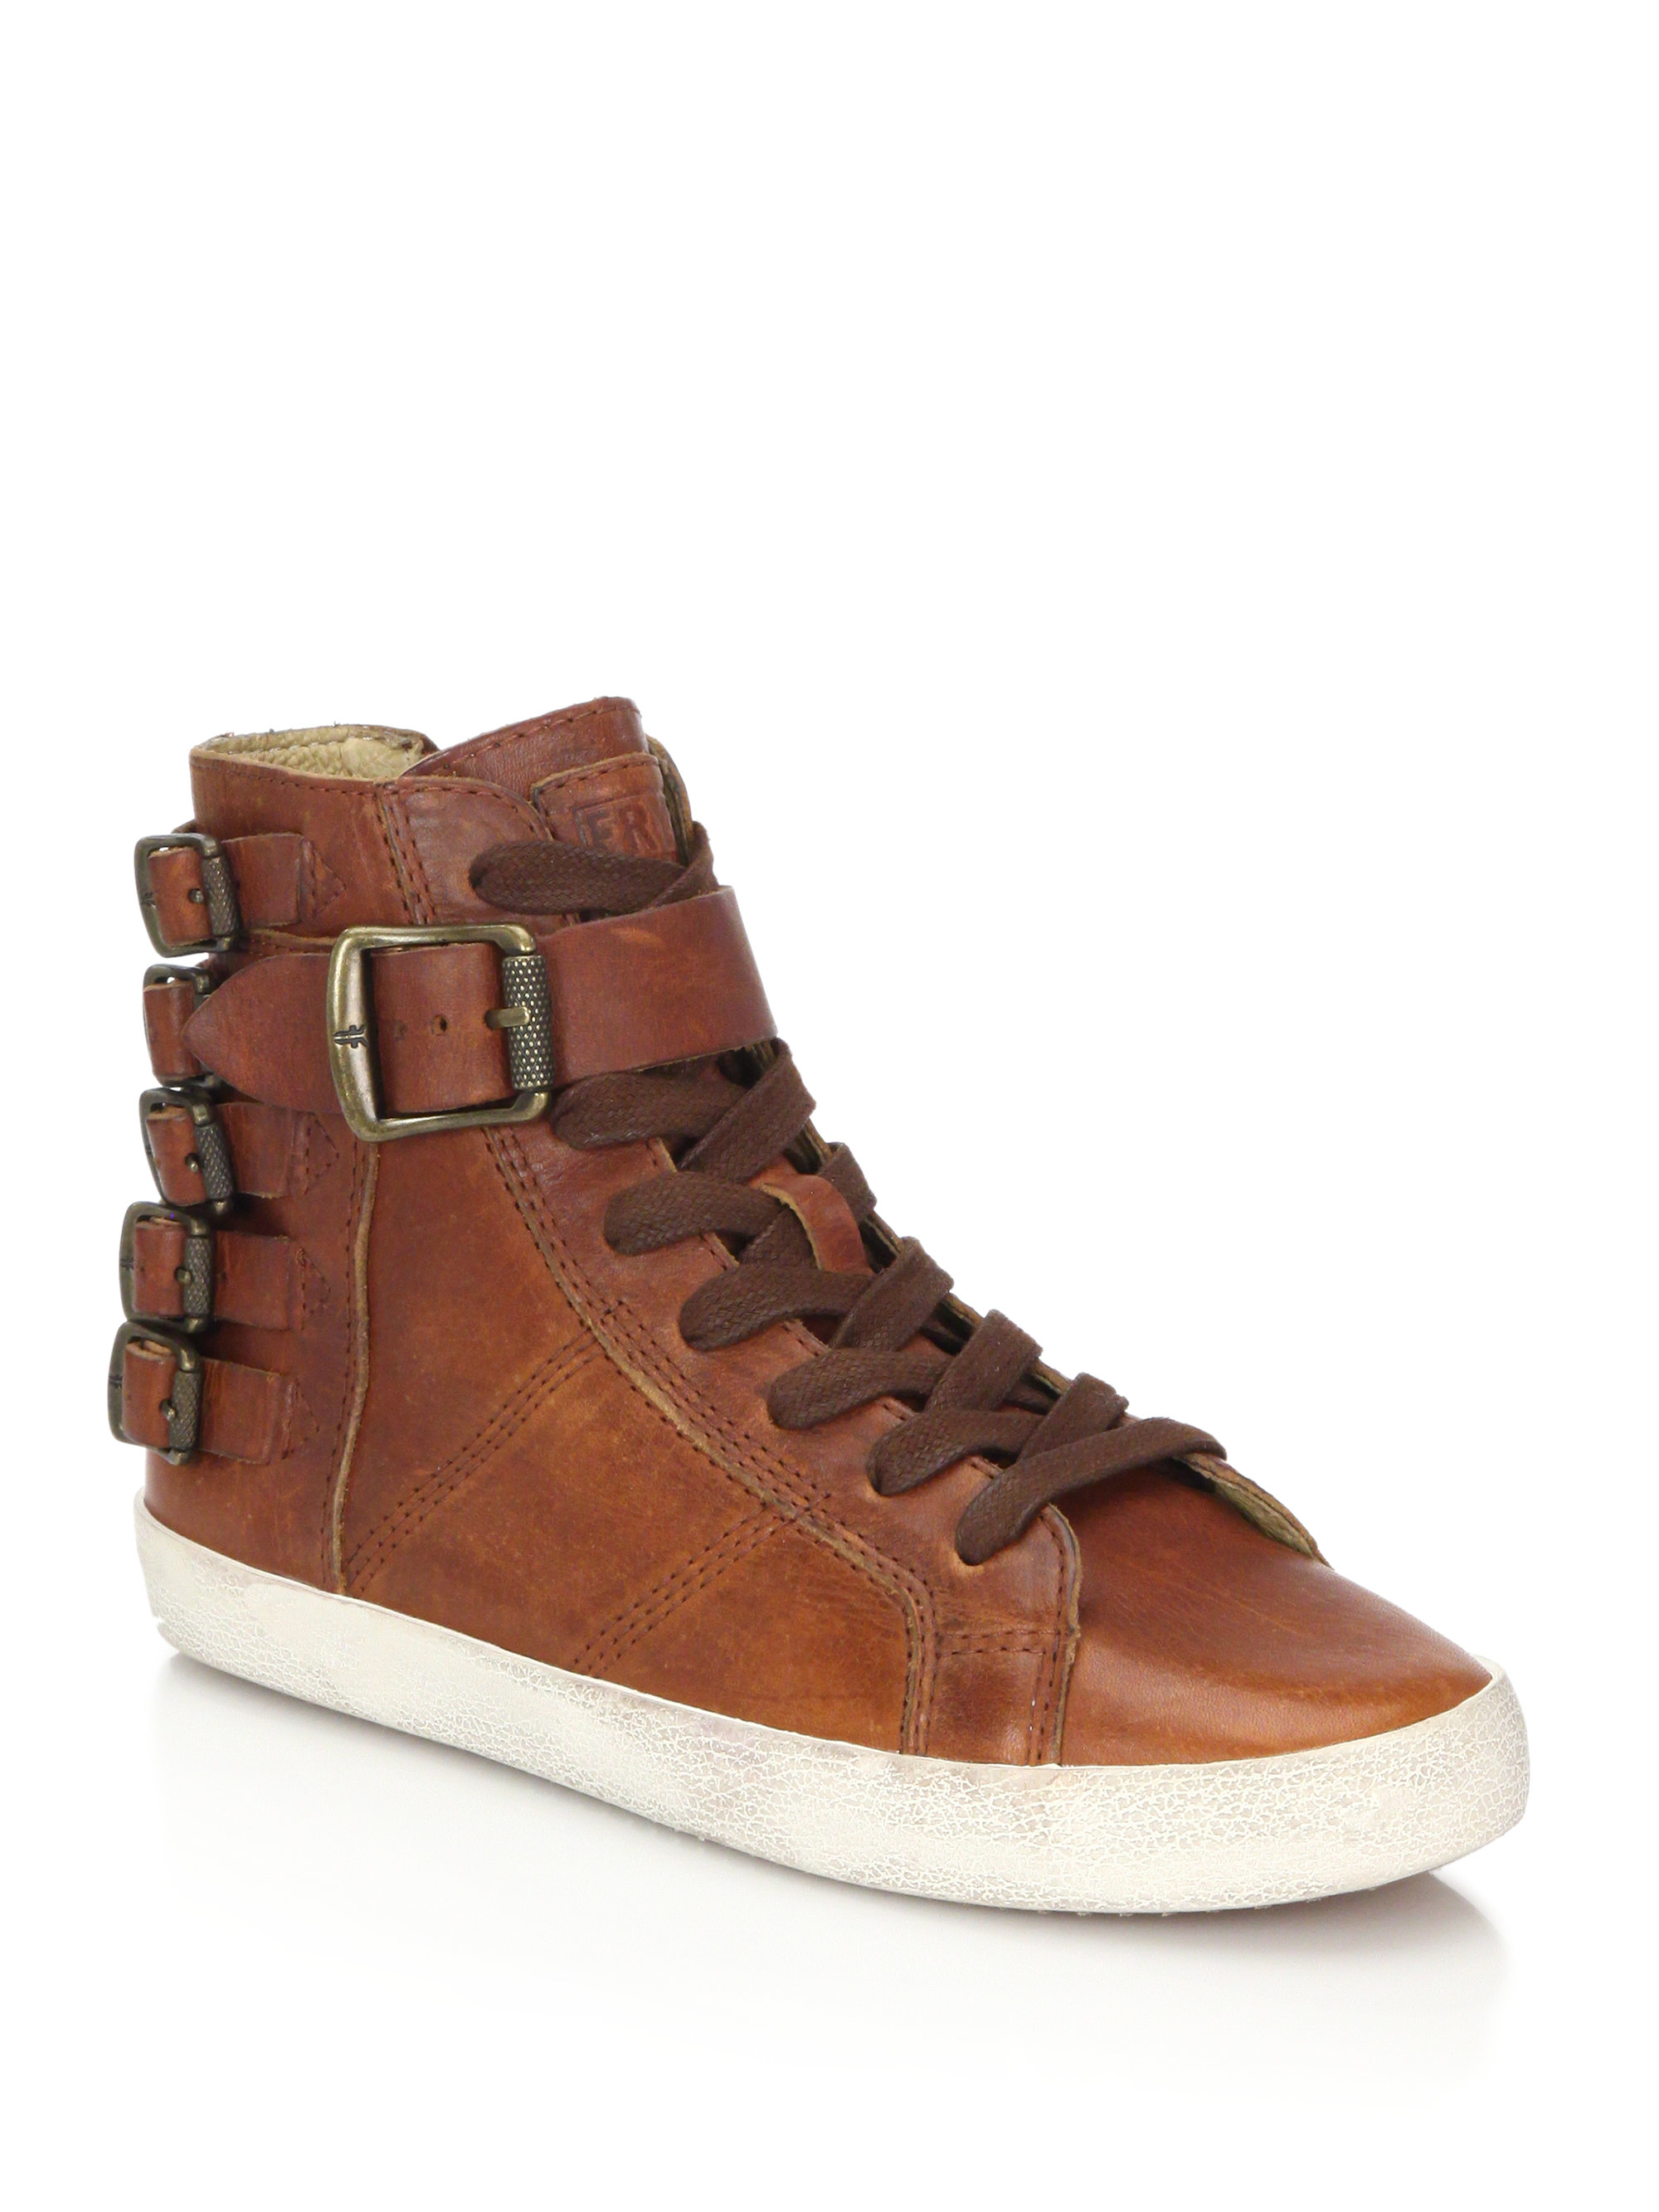 Frye Dylan Belted Leather Sneakers In Brown Lyst